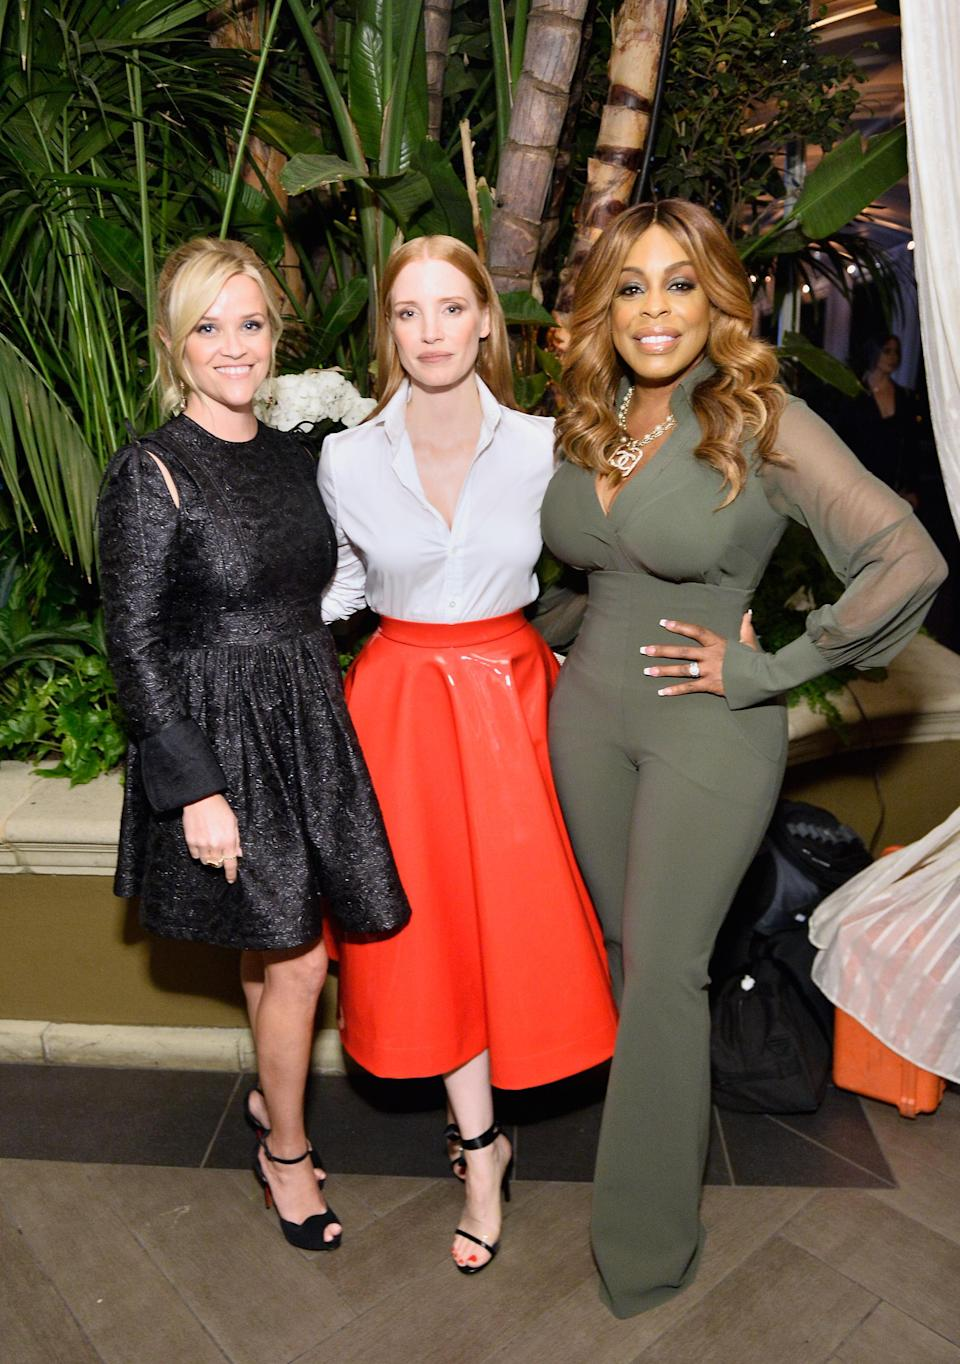 Reese Witherspoon, Jessica Chastain, and NIecy Nash at <em>Elle</em>'s Women in Hollywood celebration in L.A. on Oct. 16, 2017. (Photo: Getty Images)